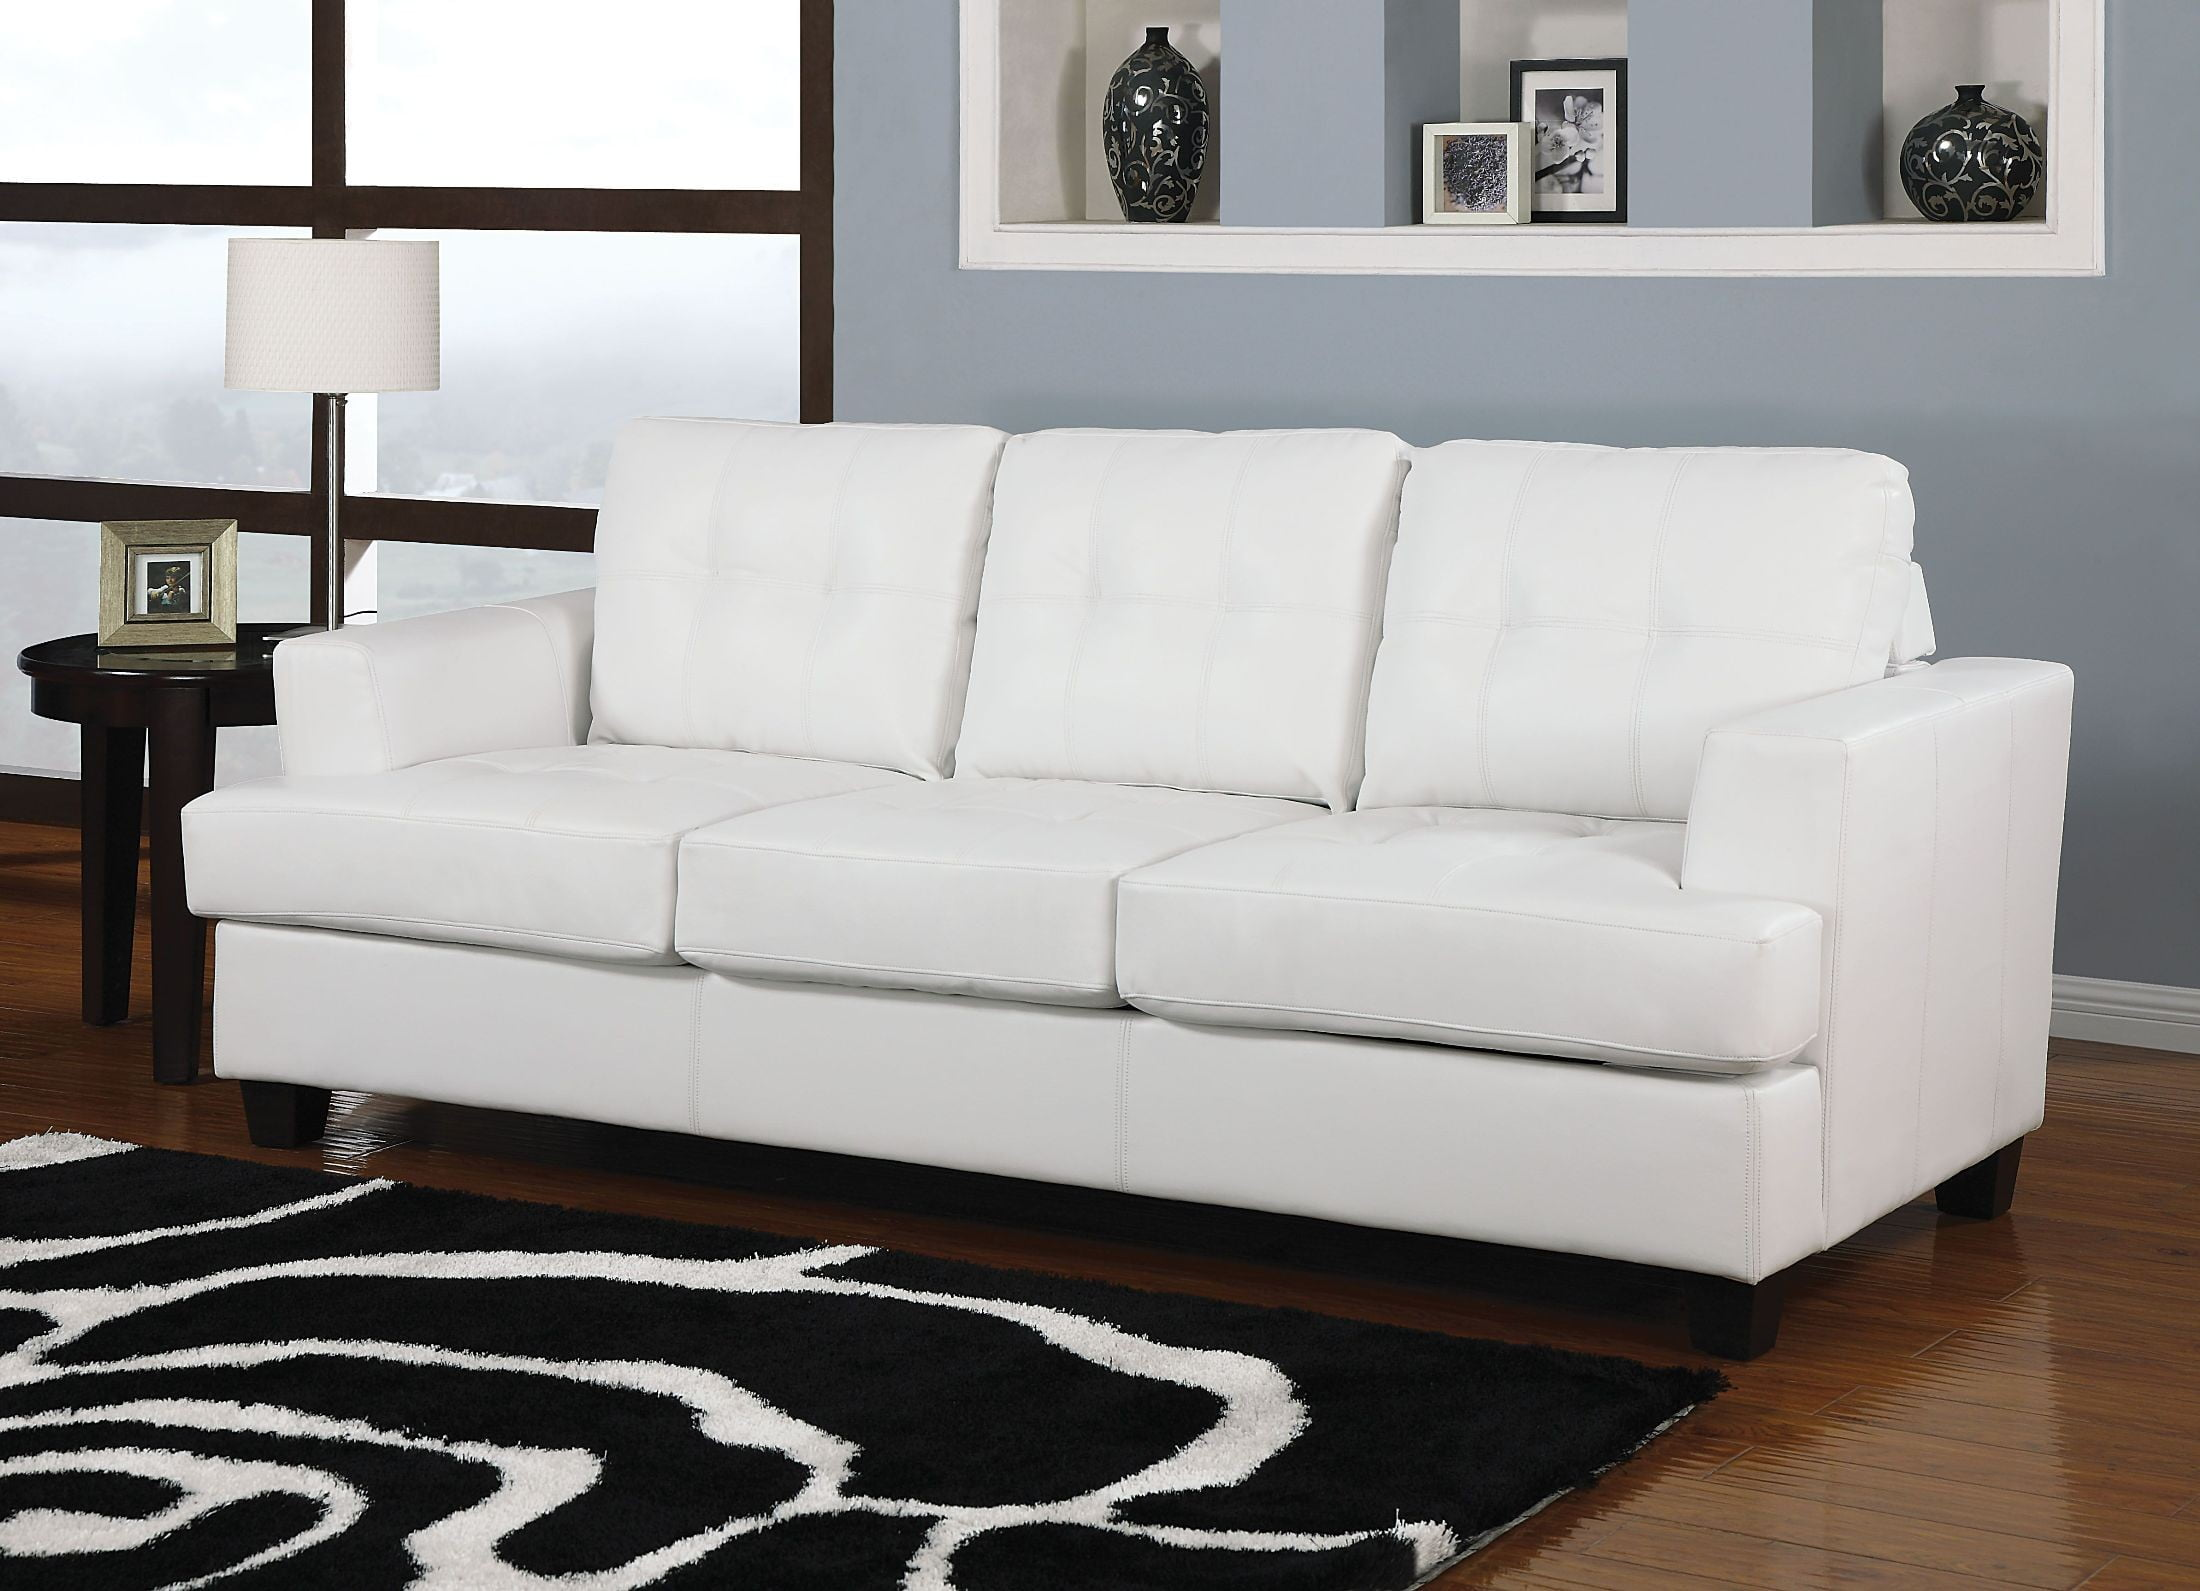 Platinum White Bonded Leather Living Room Set from Acme | Coleman ...